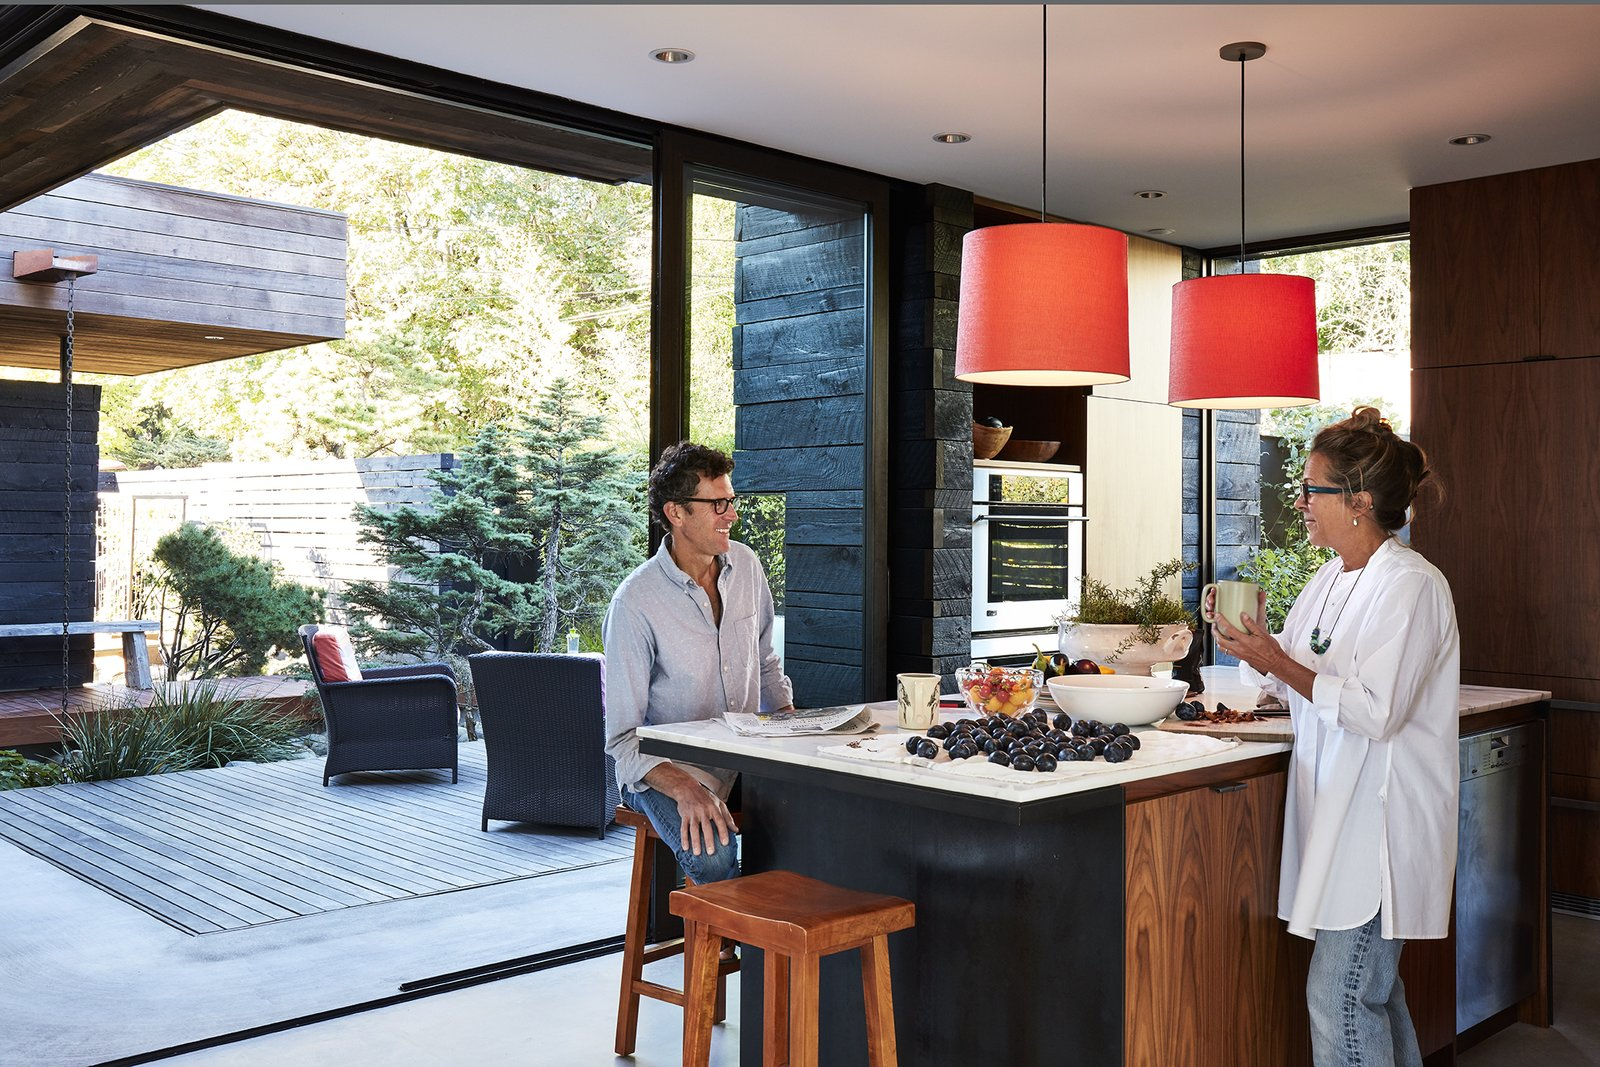 Ian Jones and Debra Peat enjoy fresh fruit grown in the backyard of their Seattle, Washington, home. Relocating from a rural community, the couple brought their passion for gardening to their new urban setting. Sliding doors from Quantum wrap around the kitchen and open to an expansive courtyard and deck, which is furnished with armchairs from Crate and Barrel. Smith pendants from Resolute hang above the PentalQuartz and marble island; the oven and dishwasher are from Miele. Tagged: Kitchen, Wood Cabinet, Marble Counter, Engineered Quartz Counter, and Pendant Lighting.  Photo 2 of 15 in Greener Grass